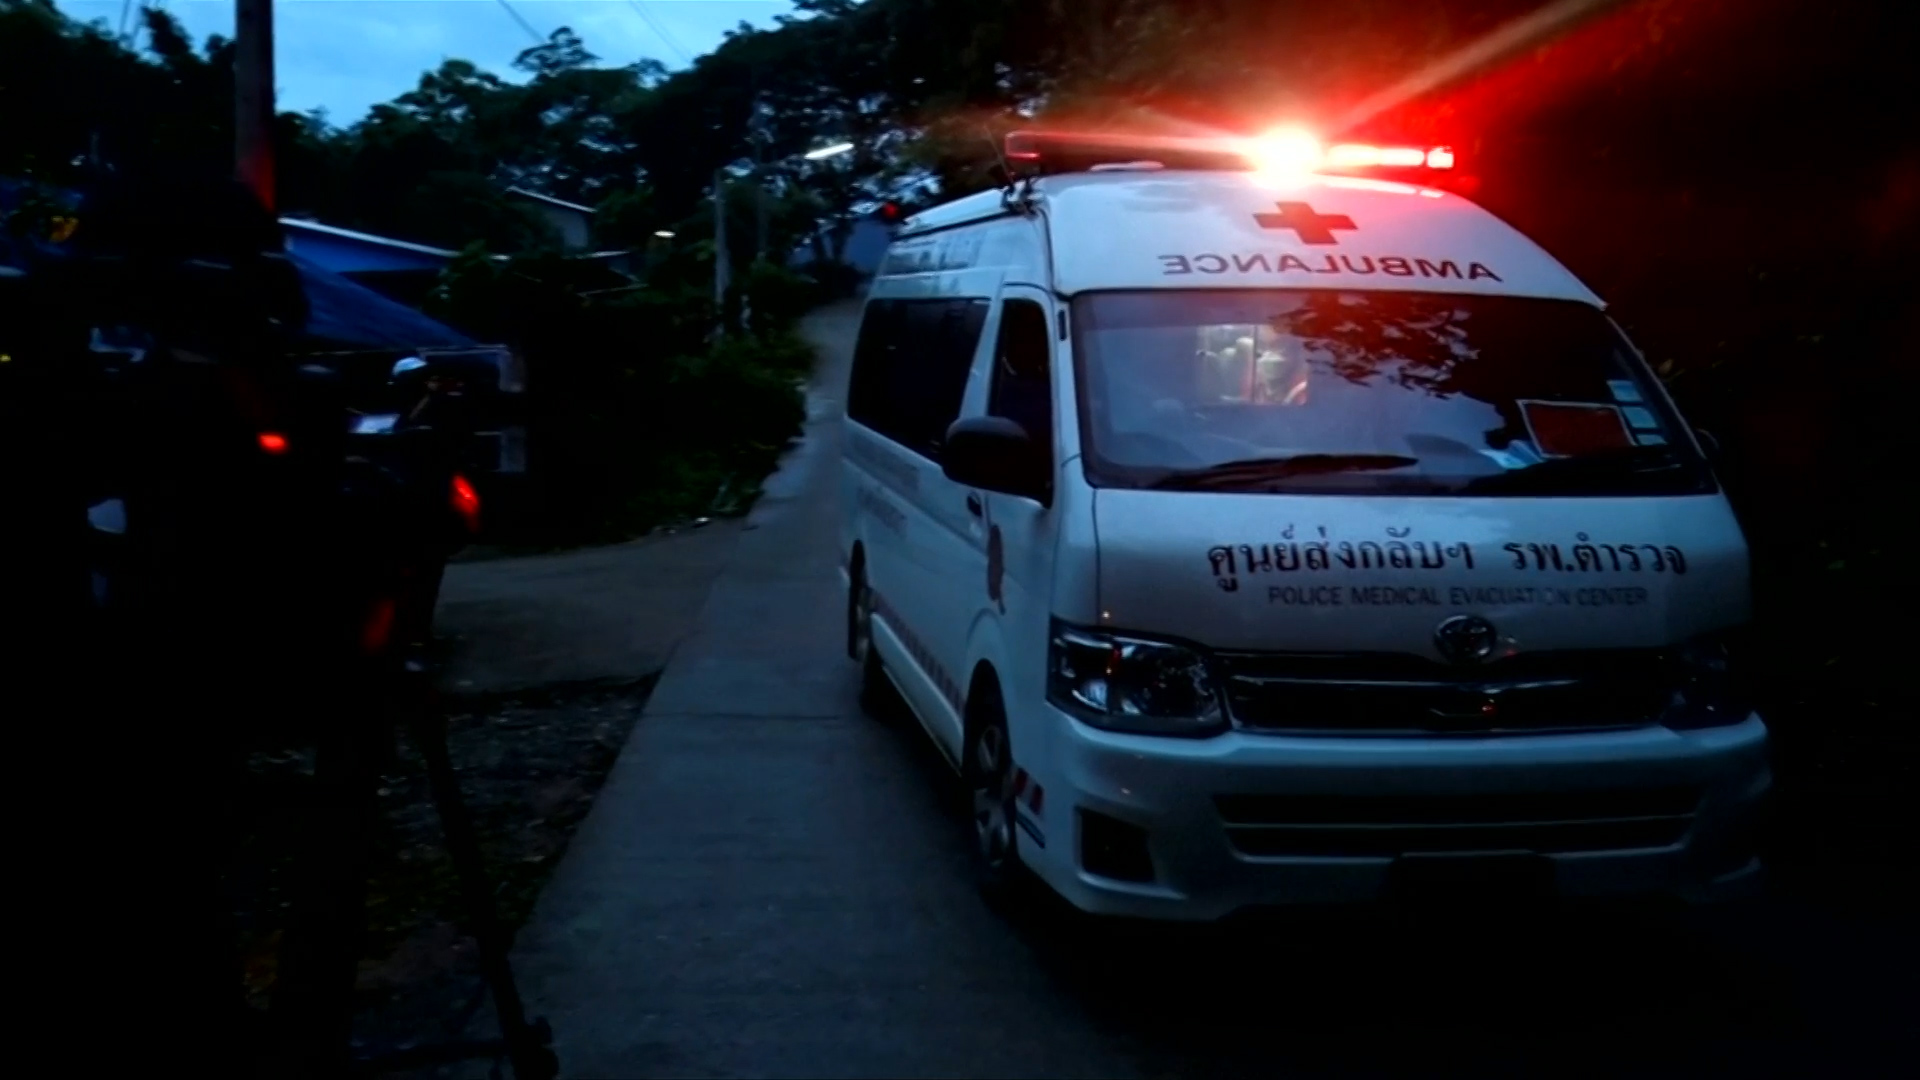 Four boys saved from Thai Caves - Fate of 9 more trapped?